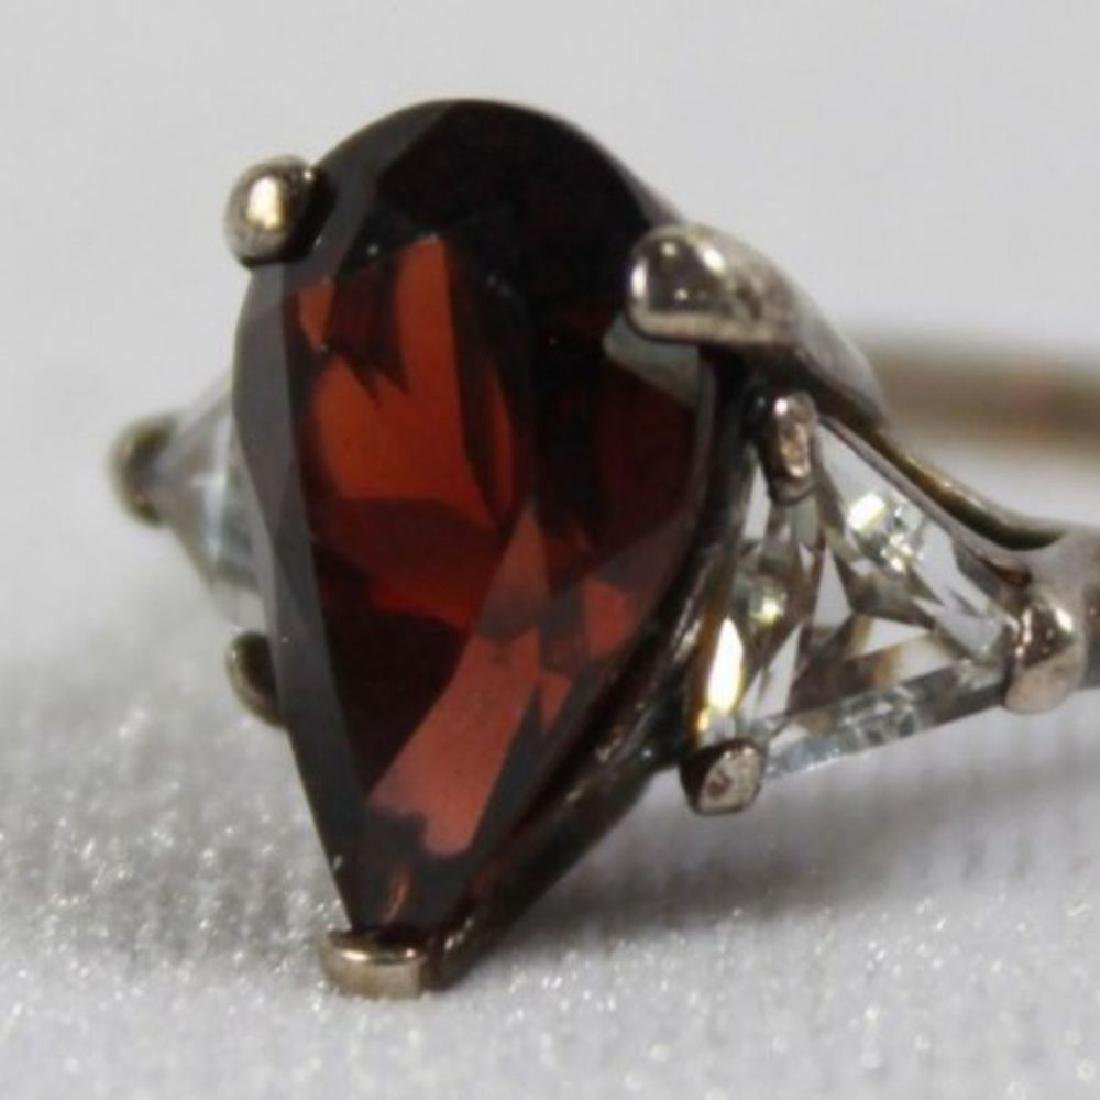 Red Pear Shaped Ring With 2 White Trillian Stones On